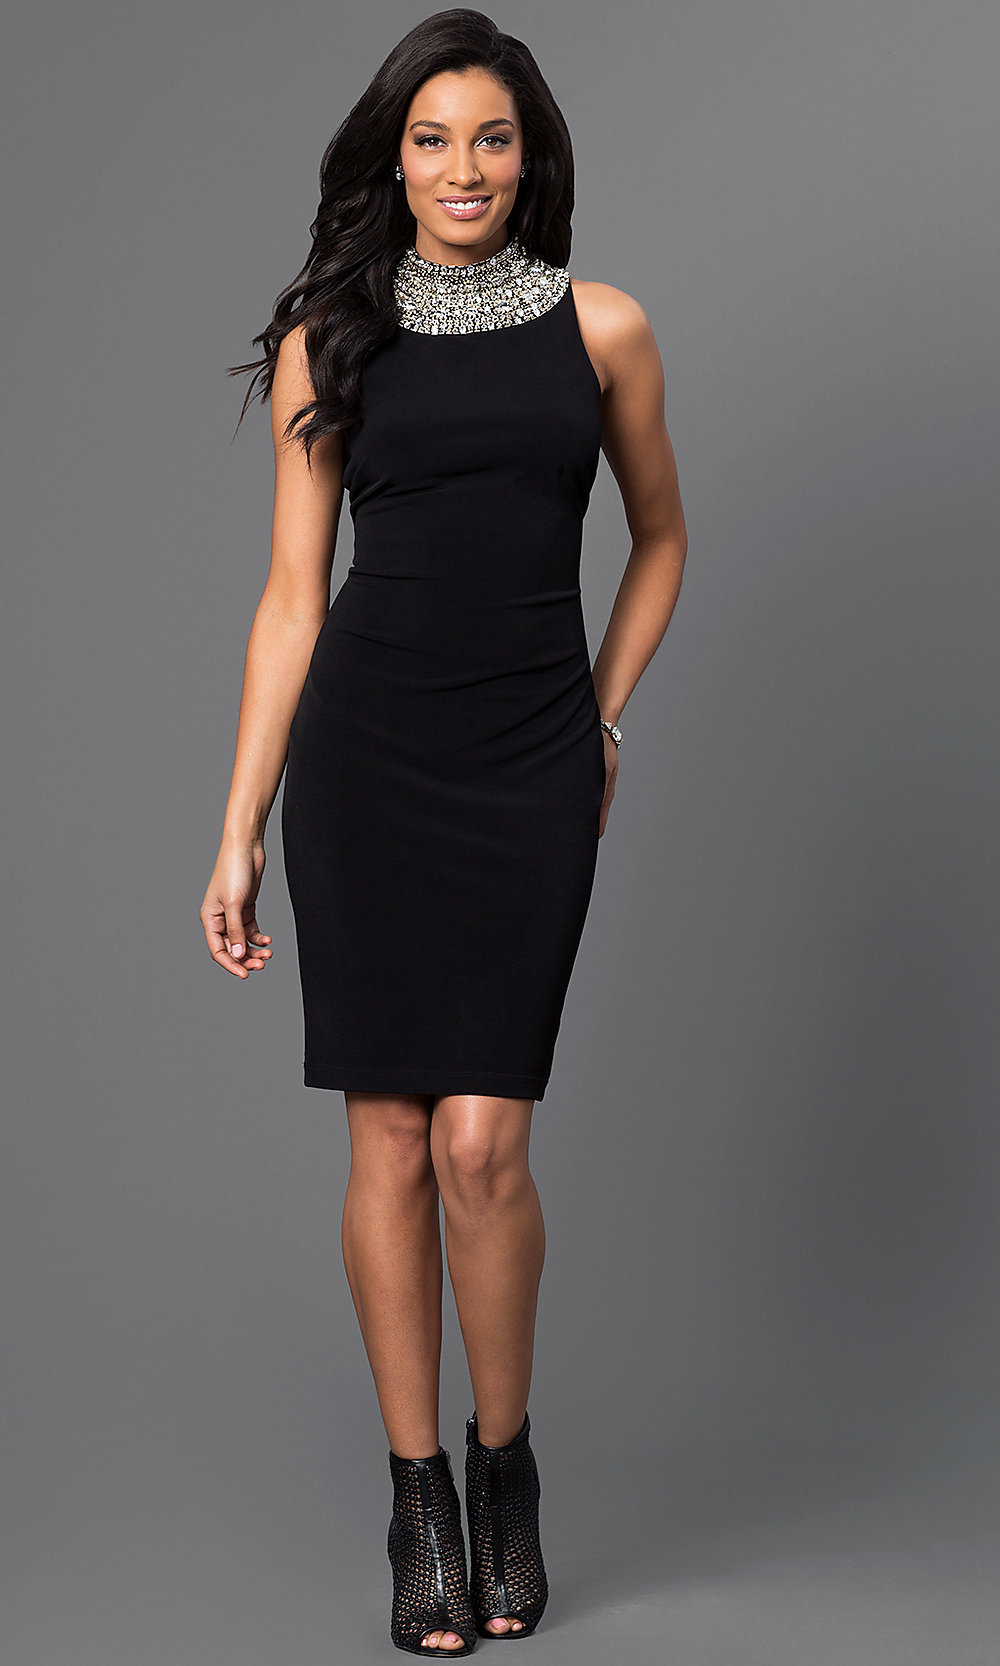 This Jewel Encrusted Round Neck Dress is the